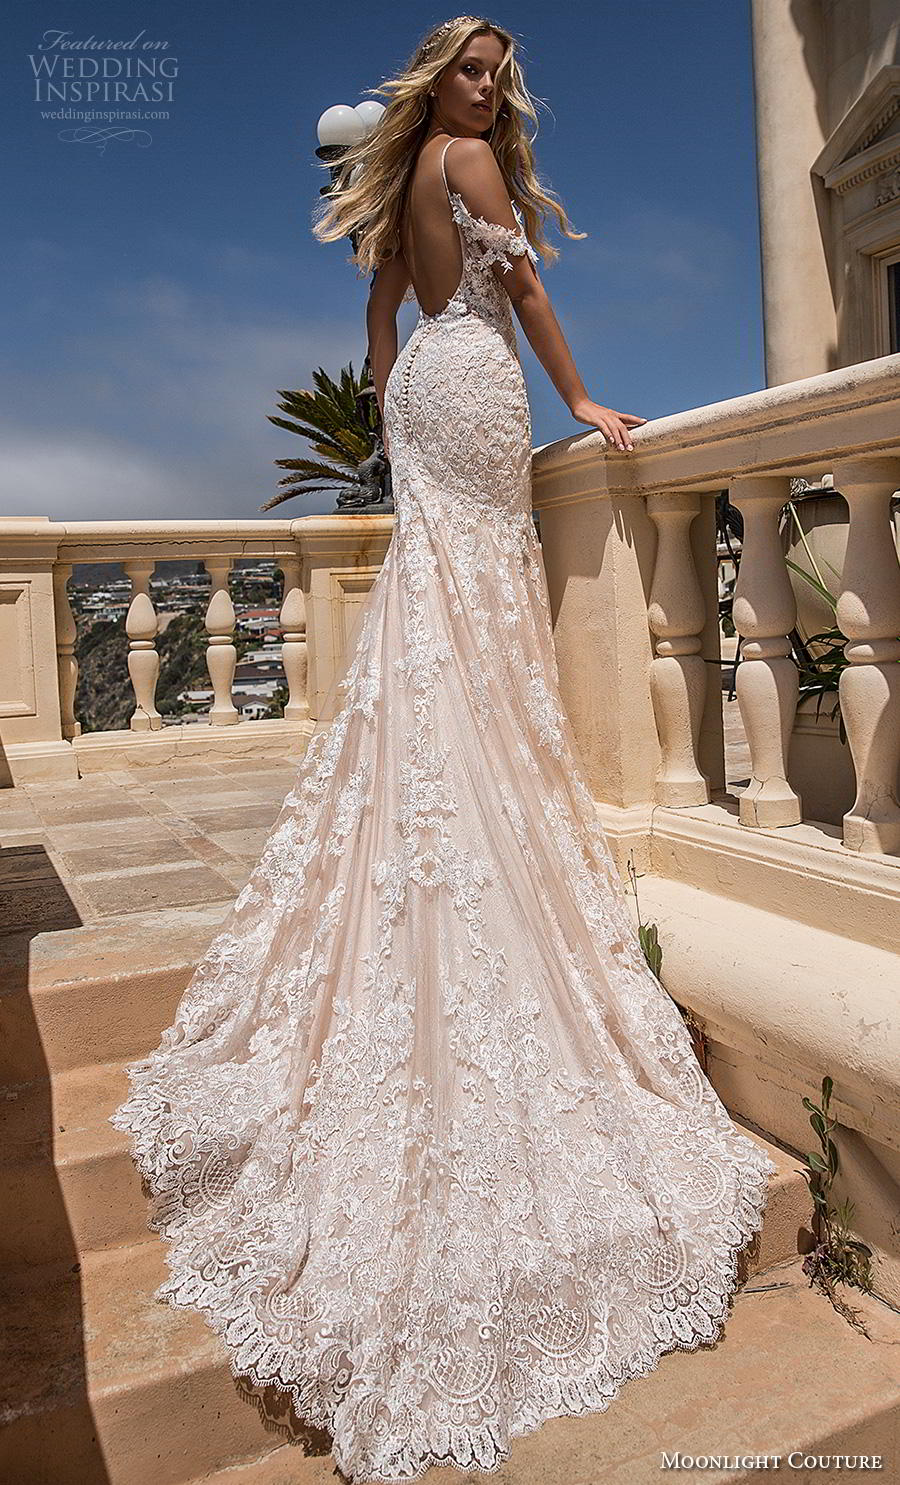 moonlight s2019 couture bridal cold shoulder spaghetti strap sweetheart neckline full embellishment elegant fit and flare wedding dress backless low scoop back chapel train (4) bv